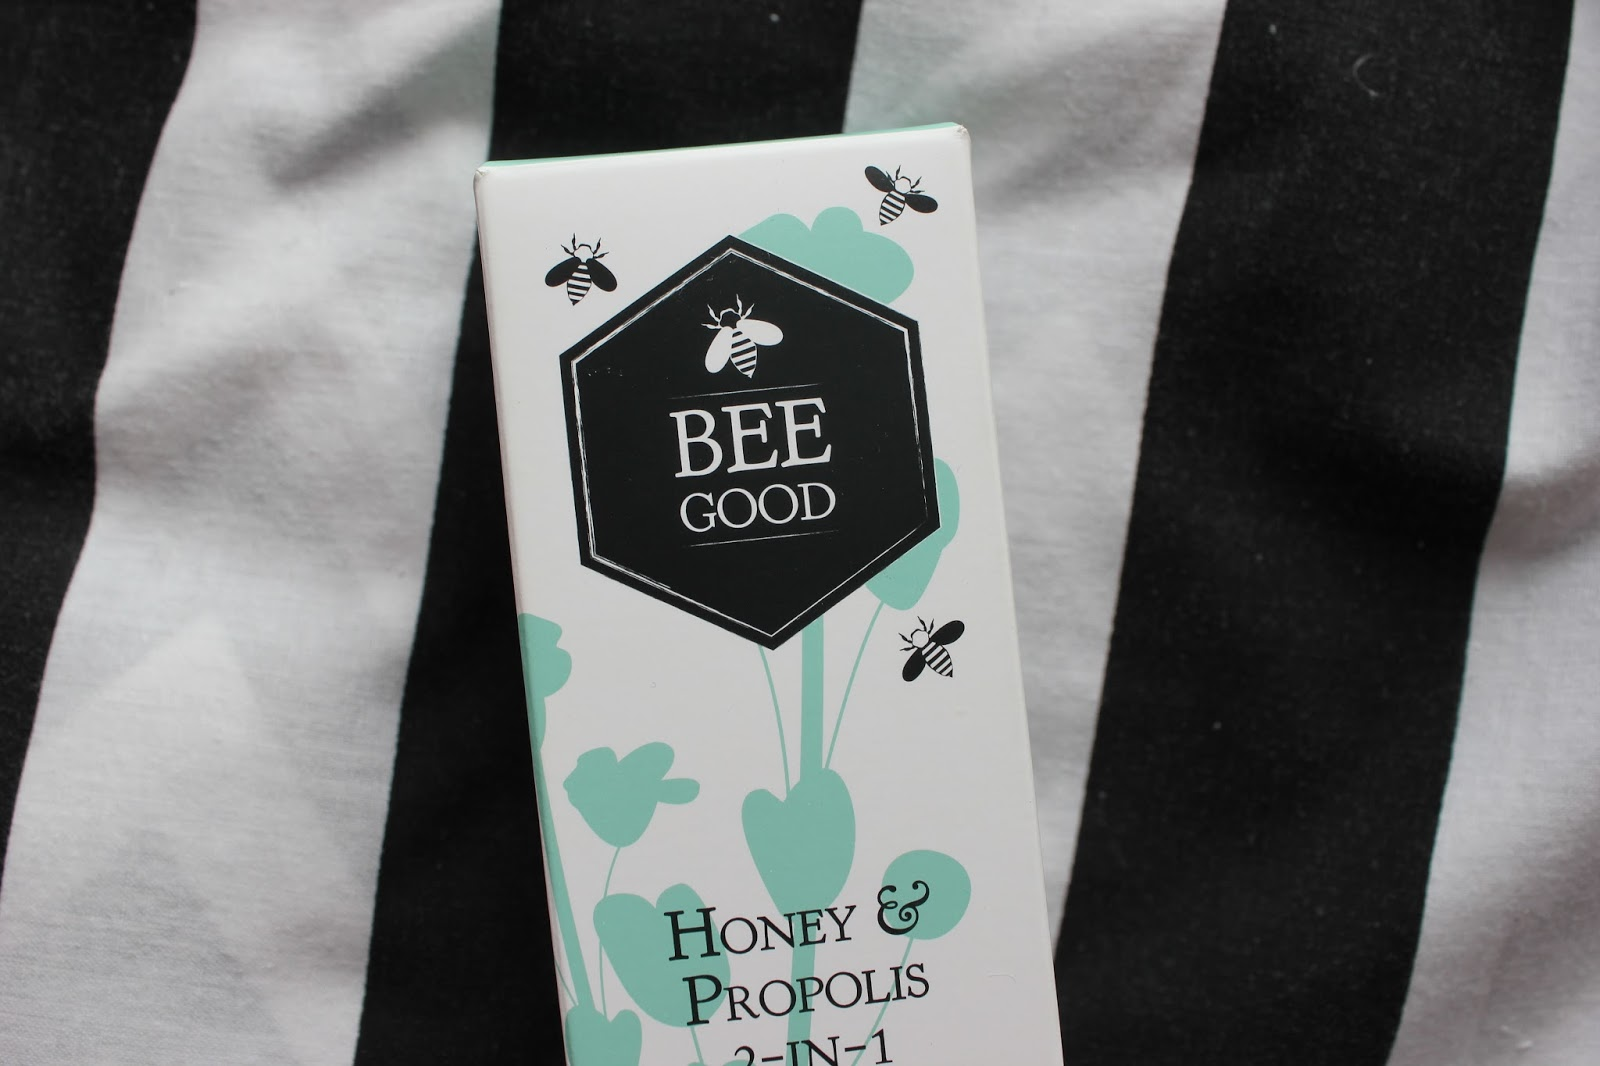 georgie-minter-brown-georgina-frequencies-beauty-blogger-review-bee-good-cleanser-bees-honey-skincare